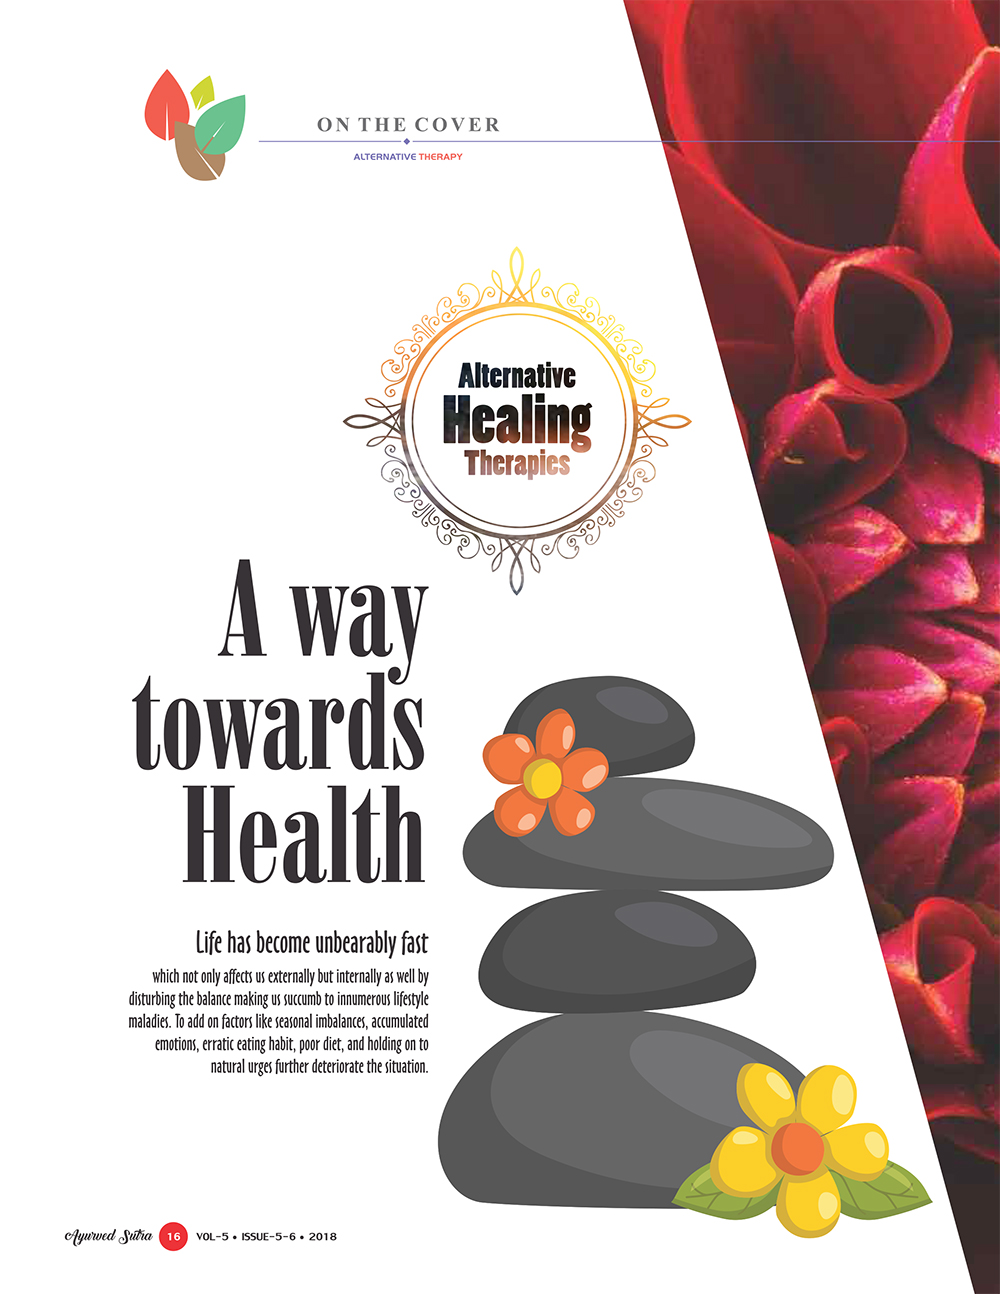 Ayurvedsutra Vol 05 issue 05 06 18 - Alternative Healing Therapies:  A way towards Health